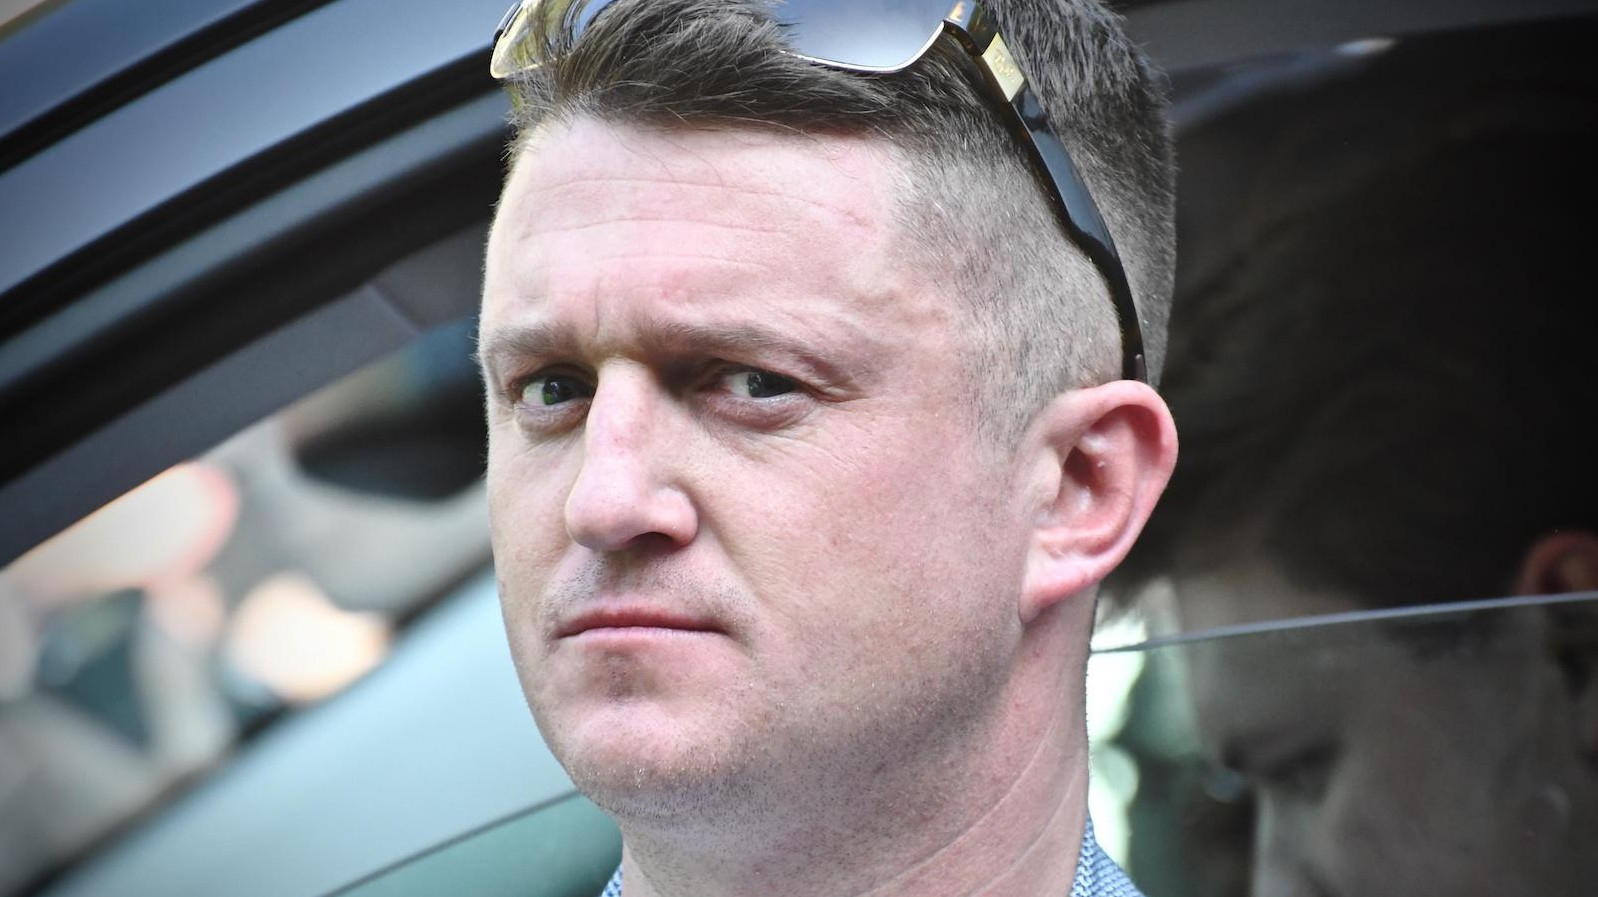 Tommy Robinson At The Day For Freedom Photo Incmonocle Alamy Stock Photo